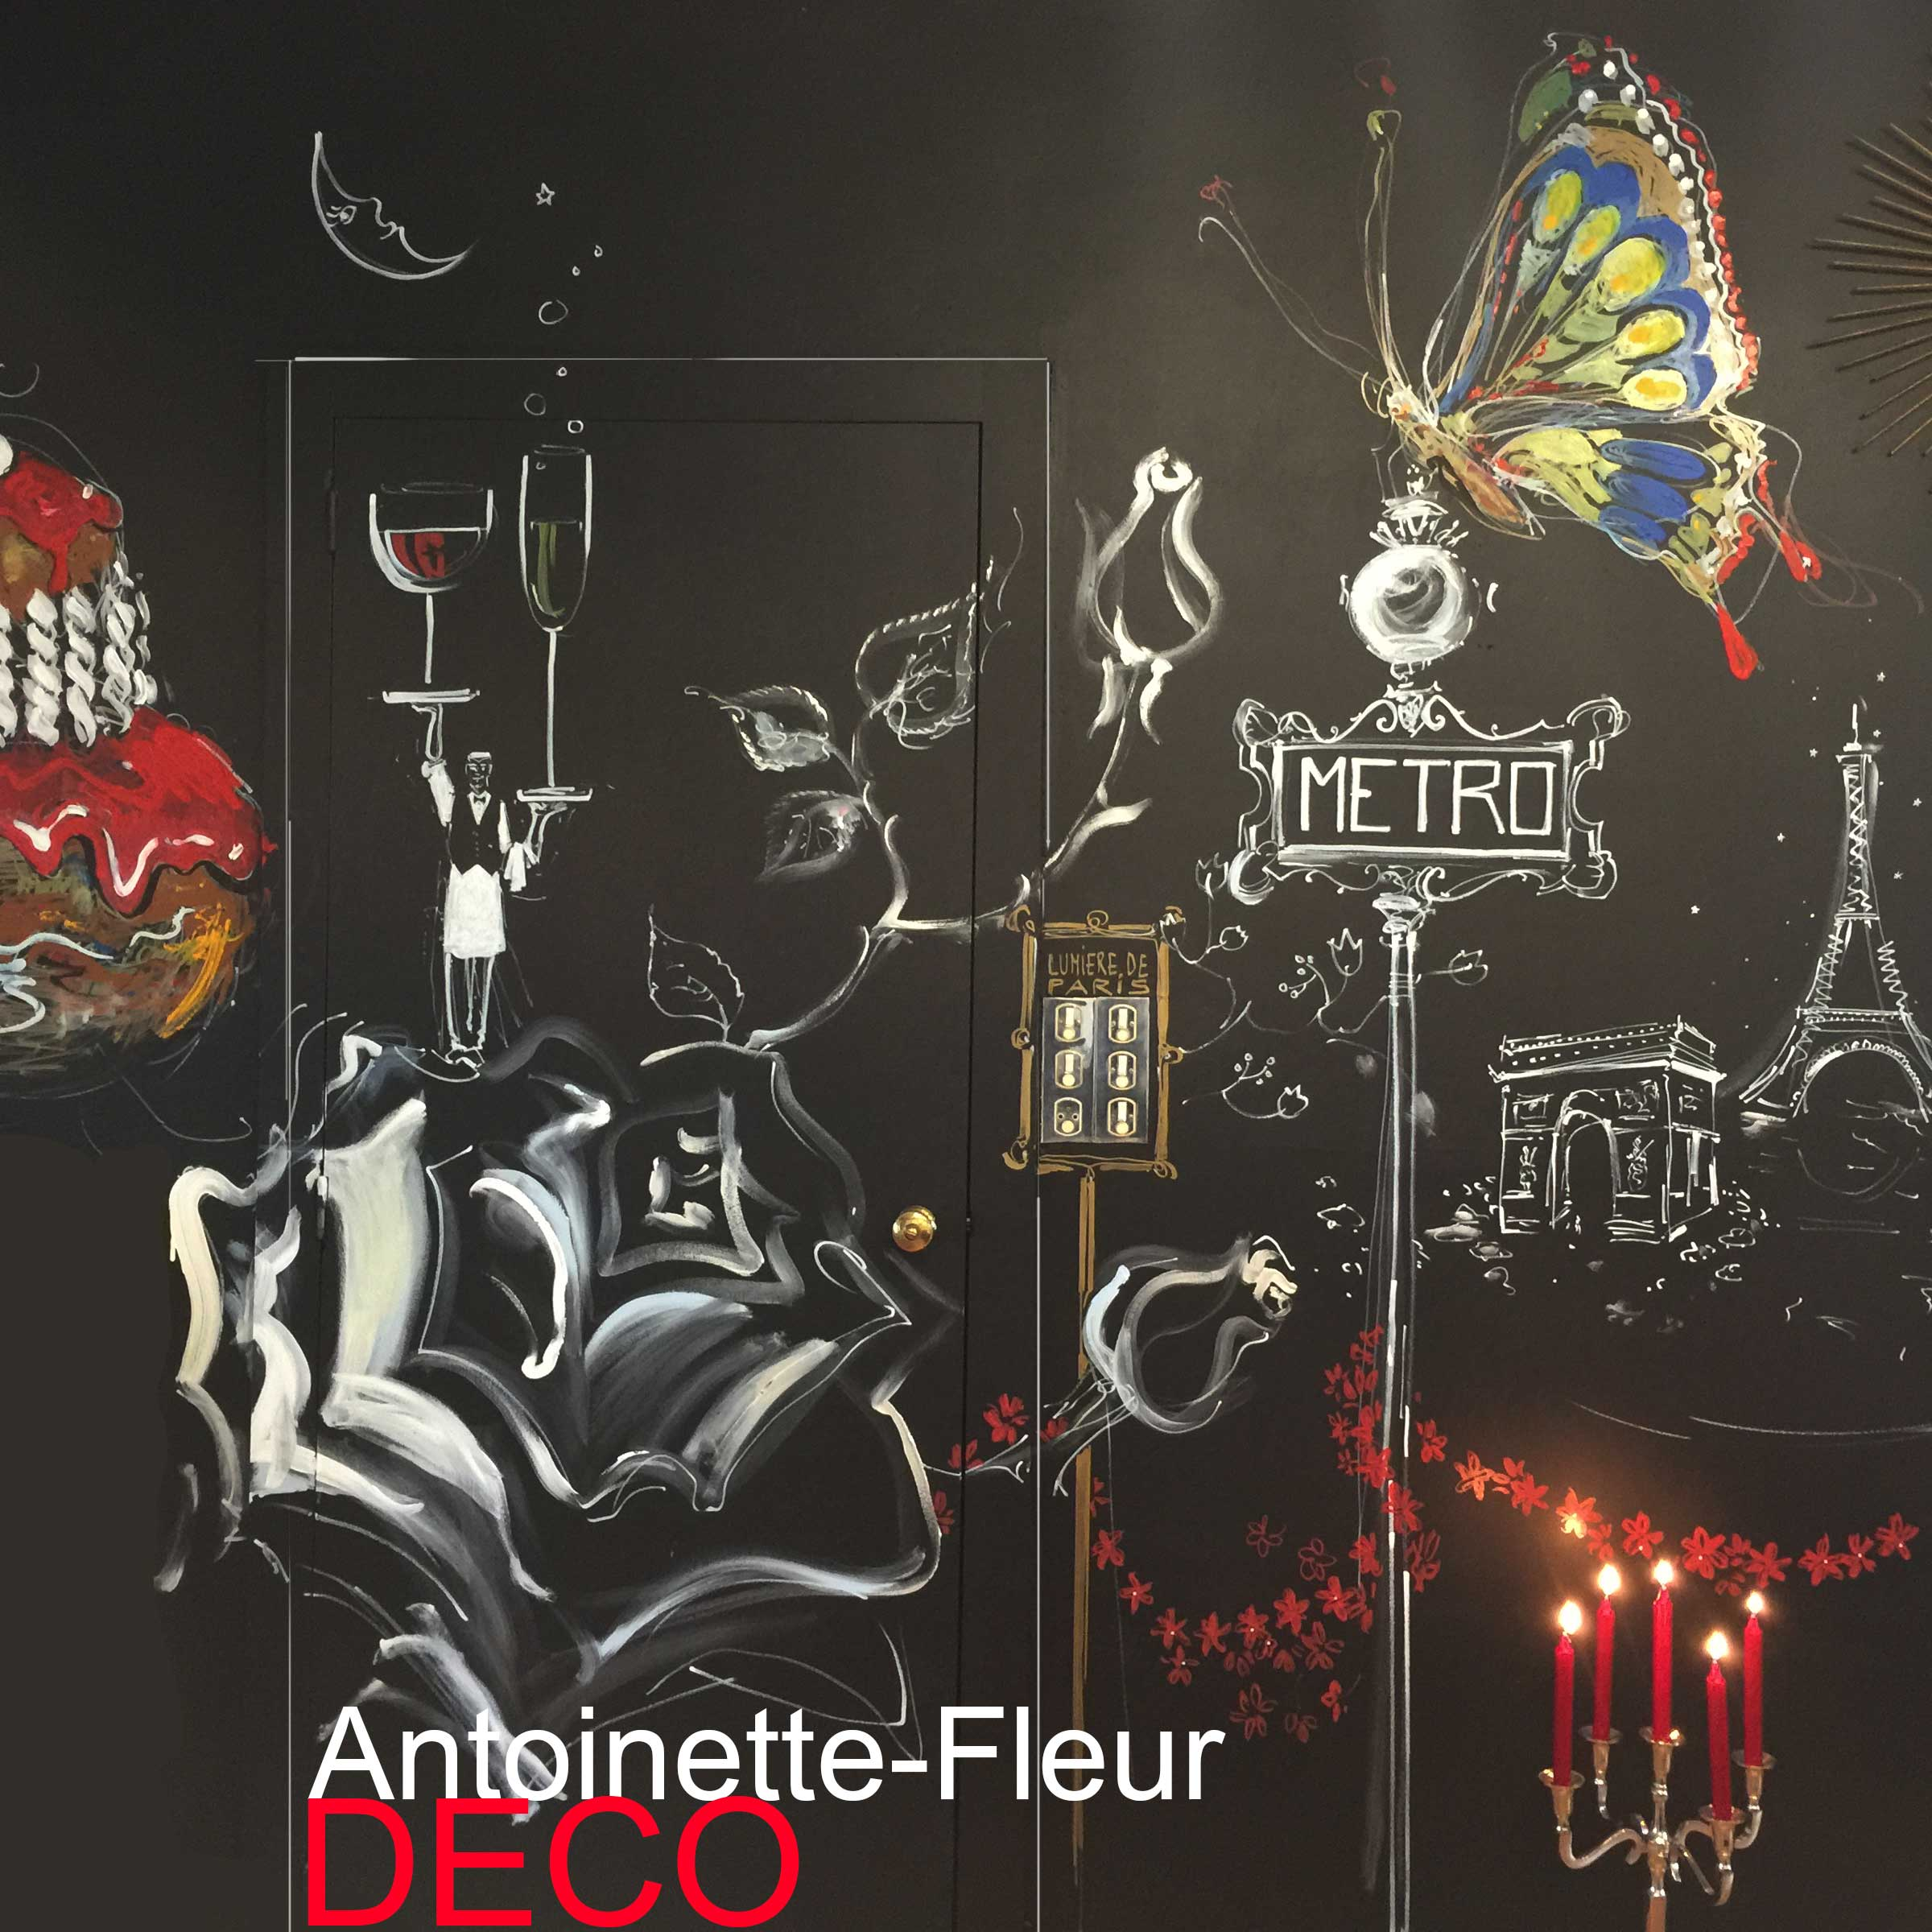 Lumiere-de-Paris-Fresque-Antoinette-wfleur-care